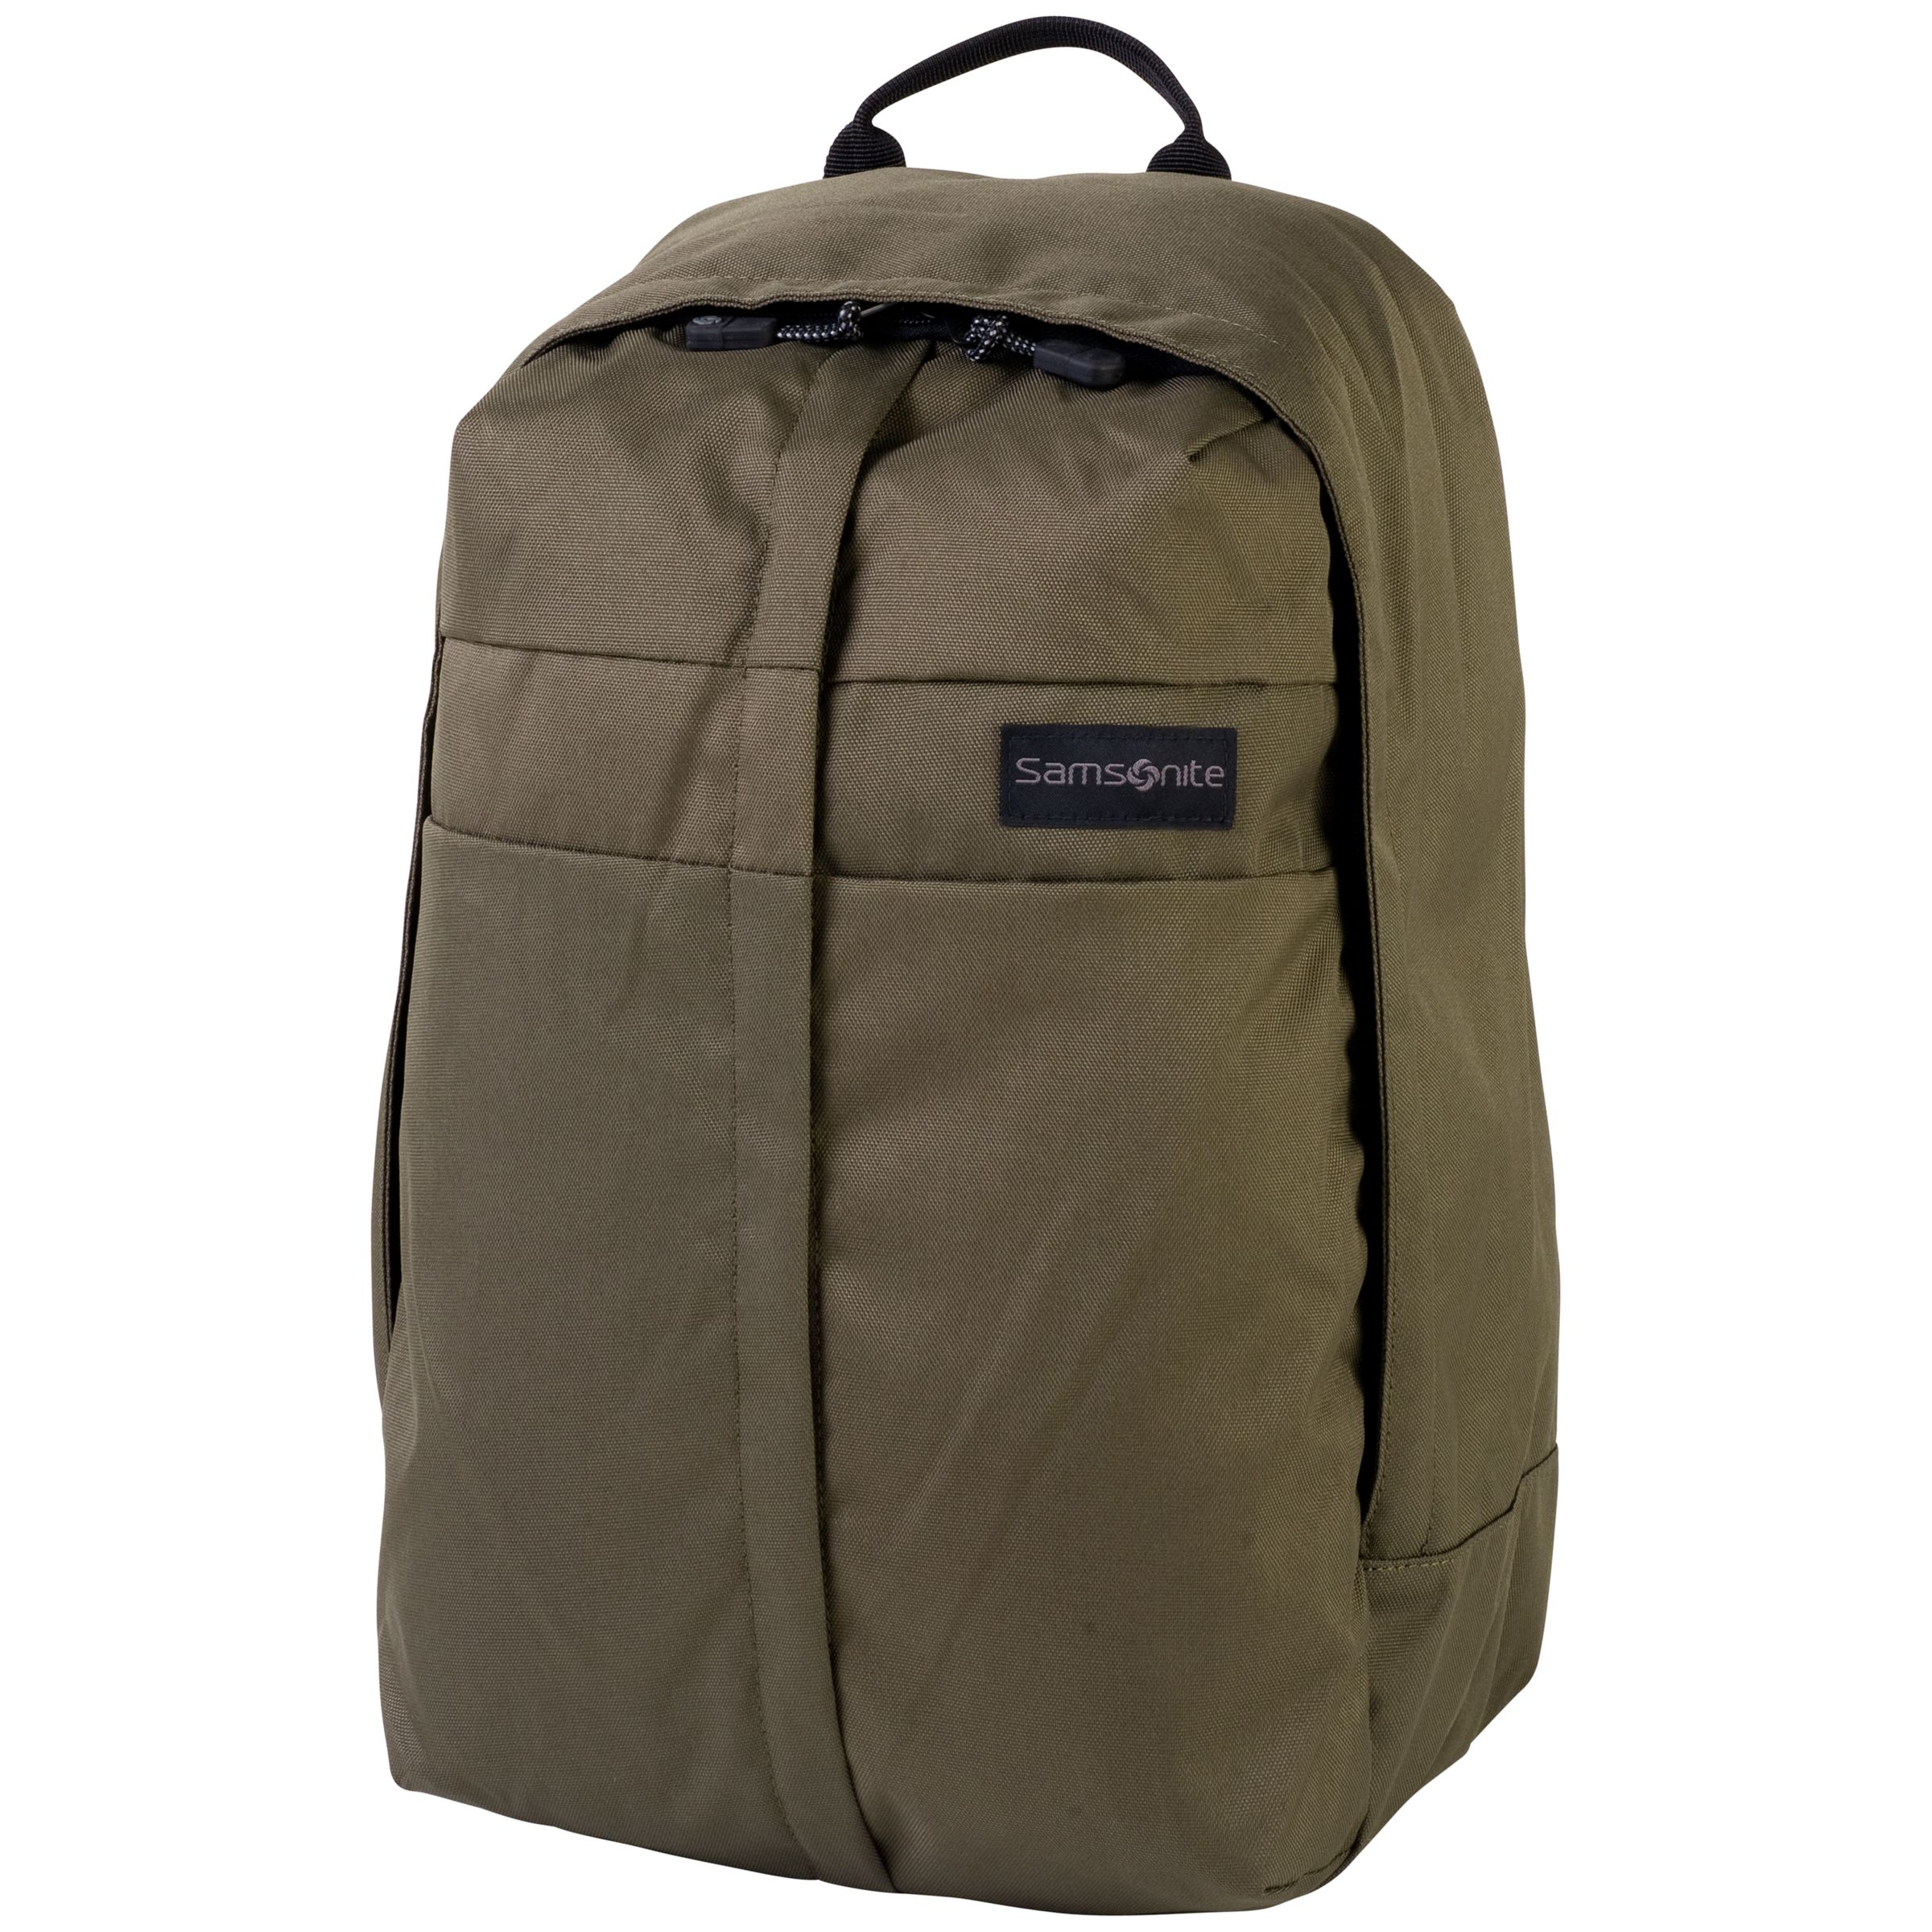 Samsonite Metatrack Backpack, Khaki